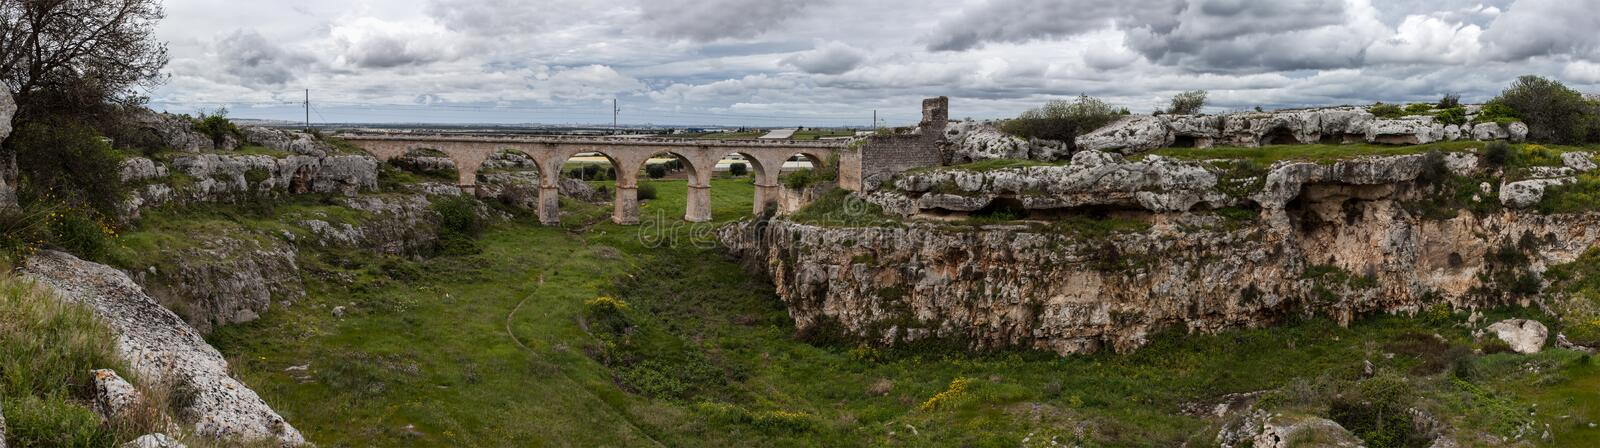 Download Landscape With Bridge Royalty Free Stock Image - Image: 32329396